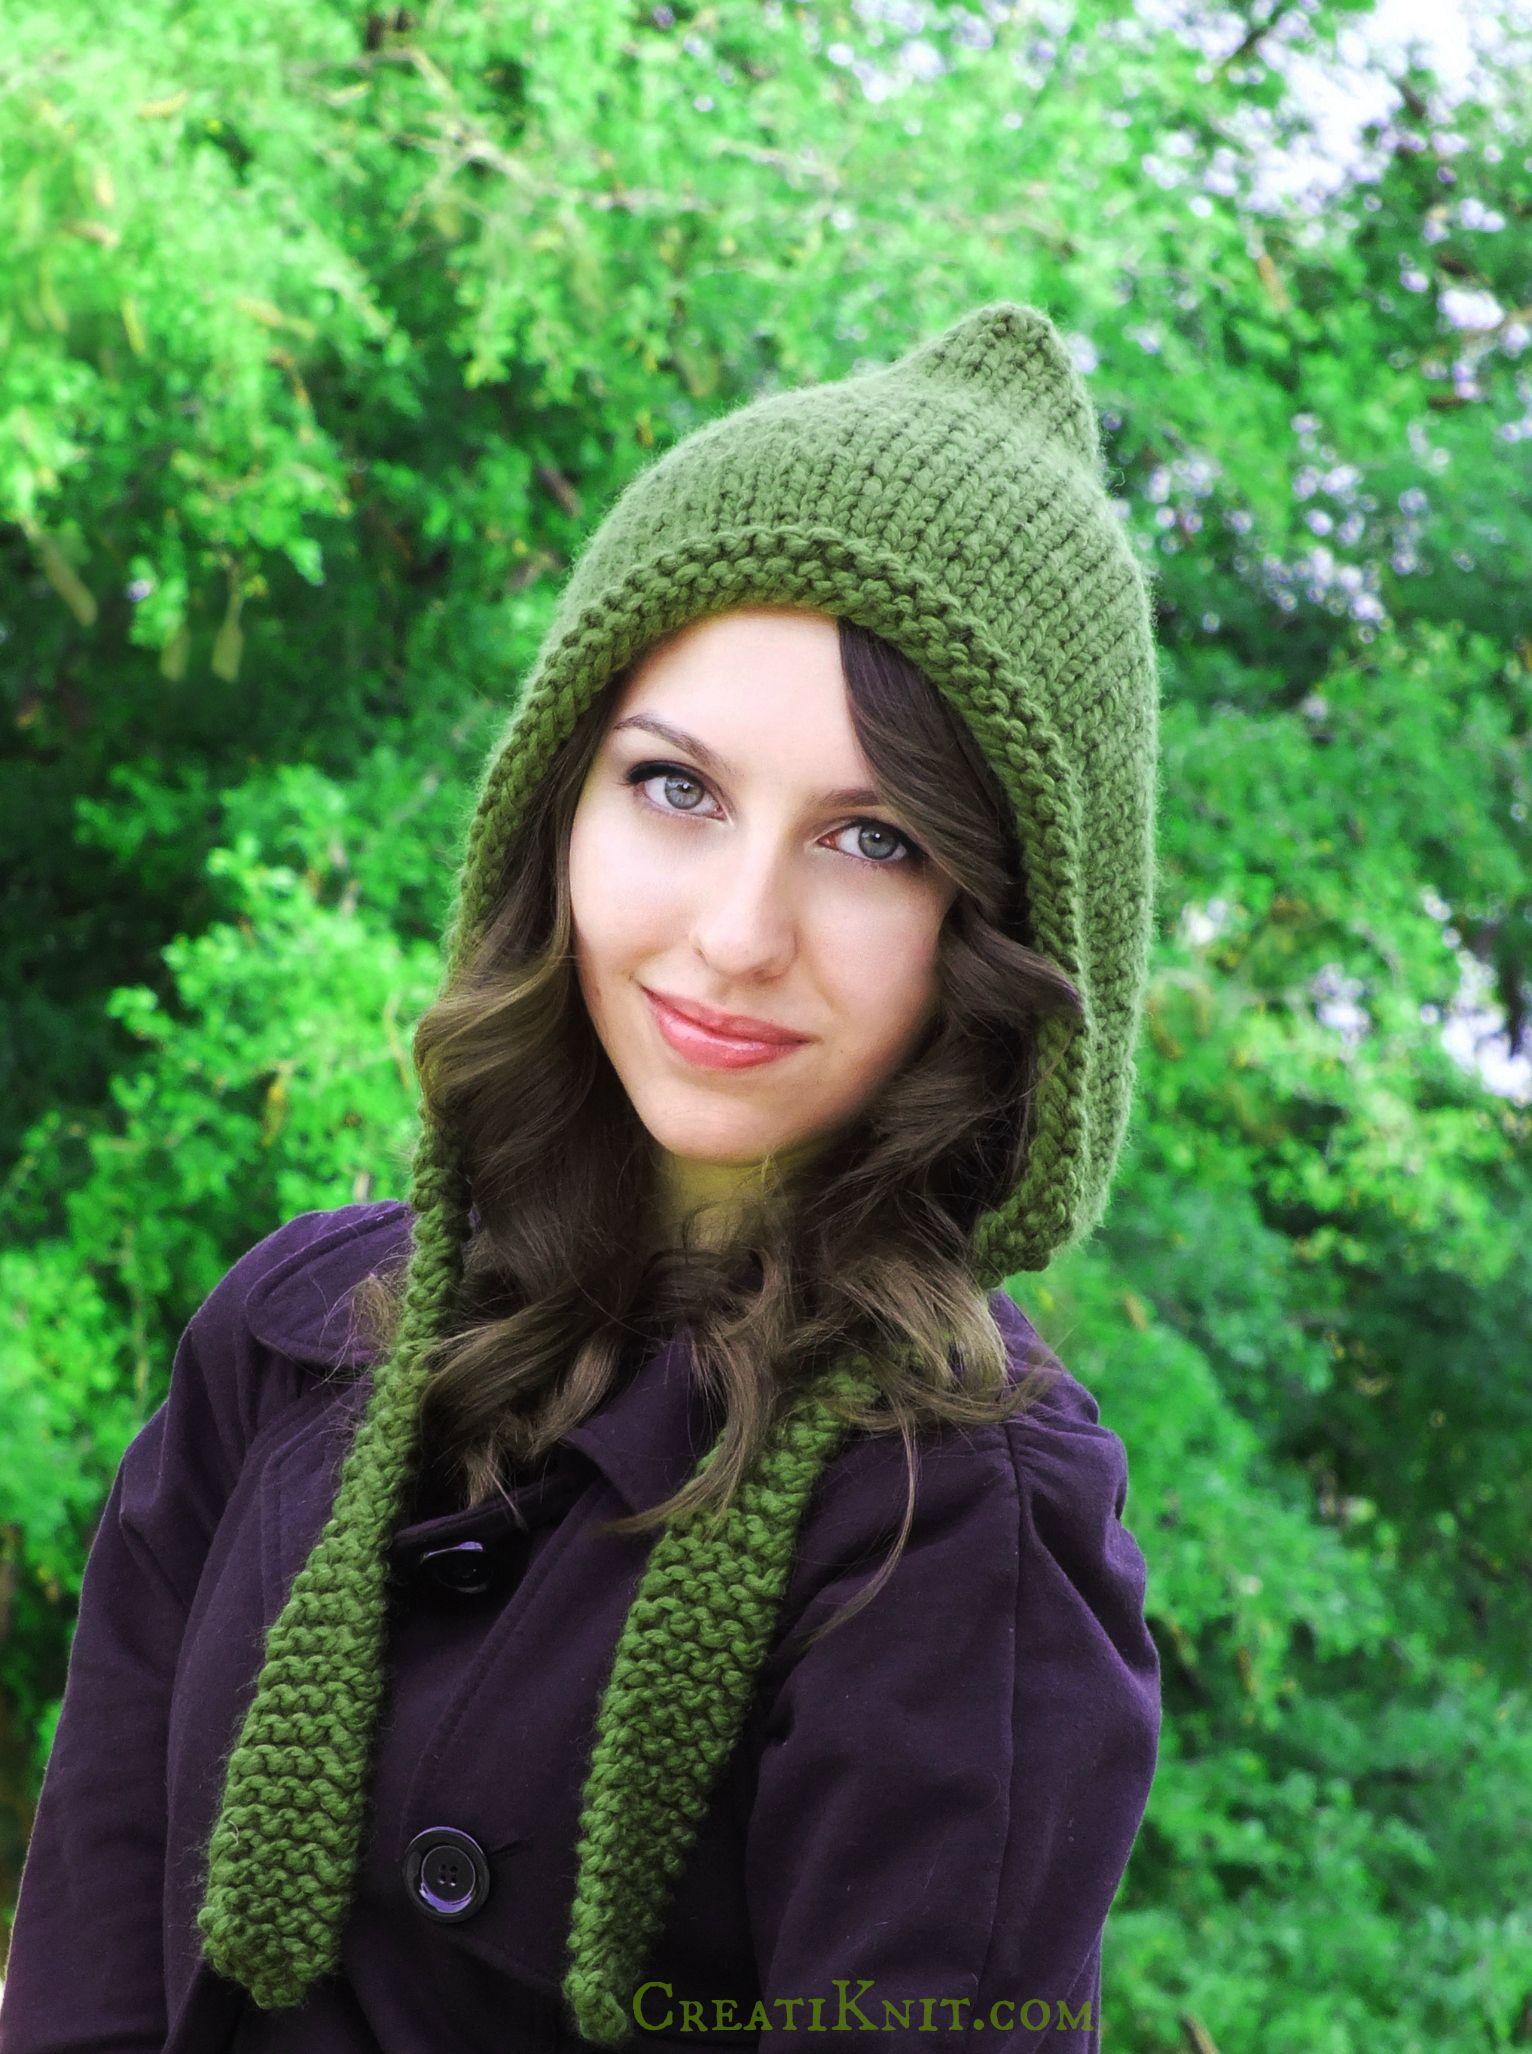 Sprinkle magic   fun into your wardrobe with this Pixie Hood knitting  project! Such an easy   fast knit 74382f35641